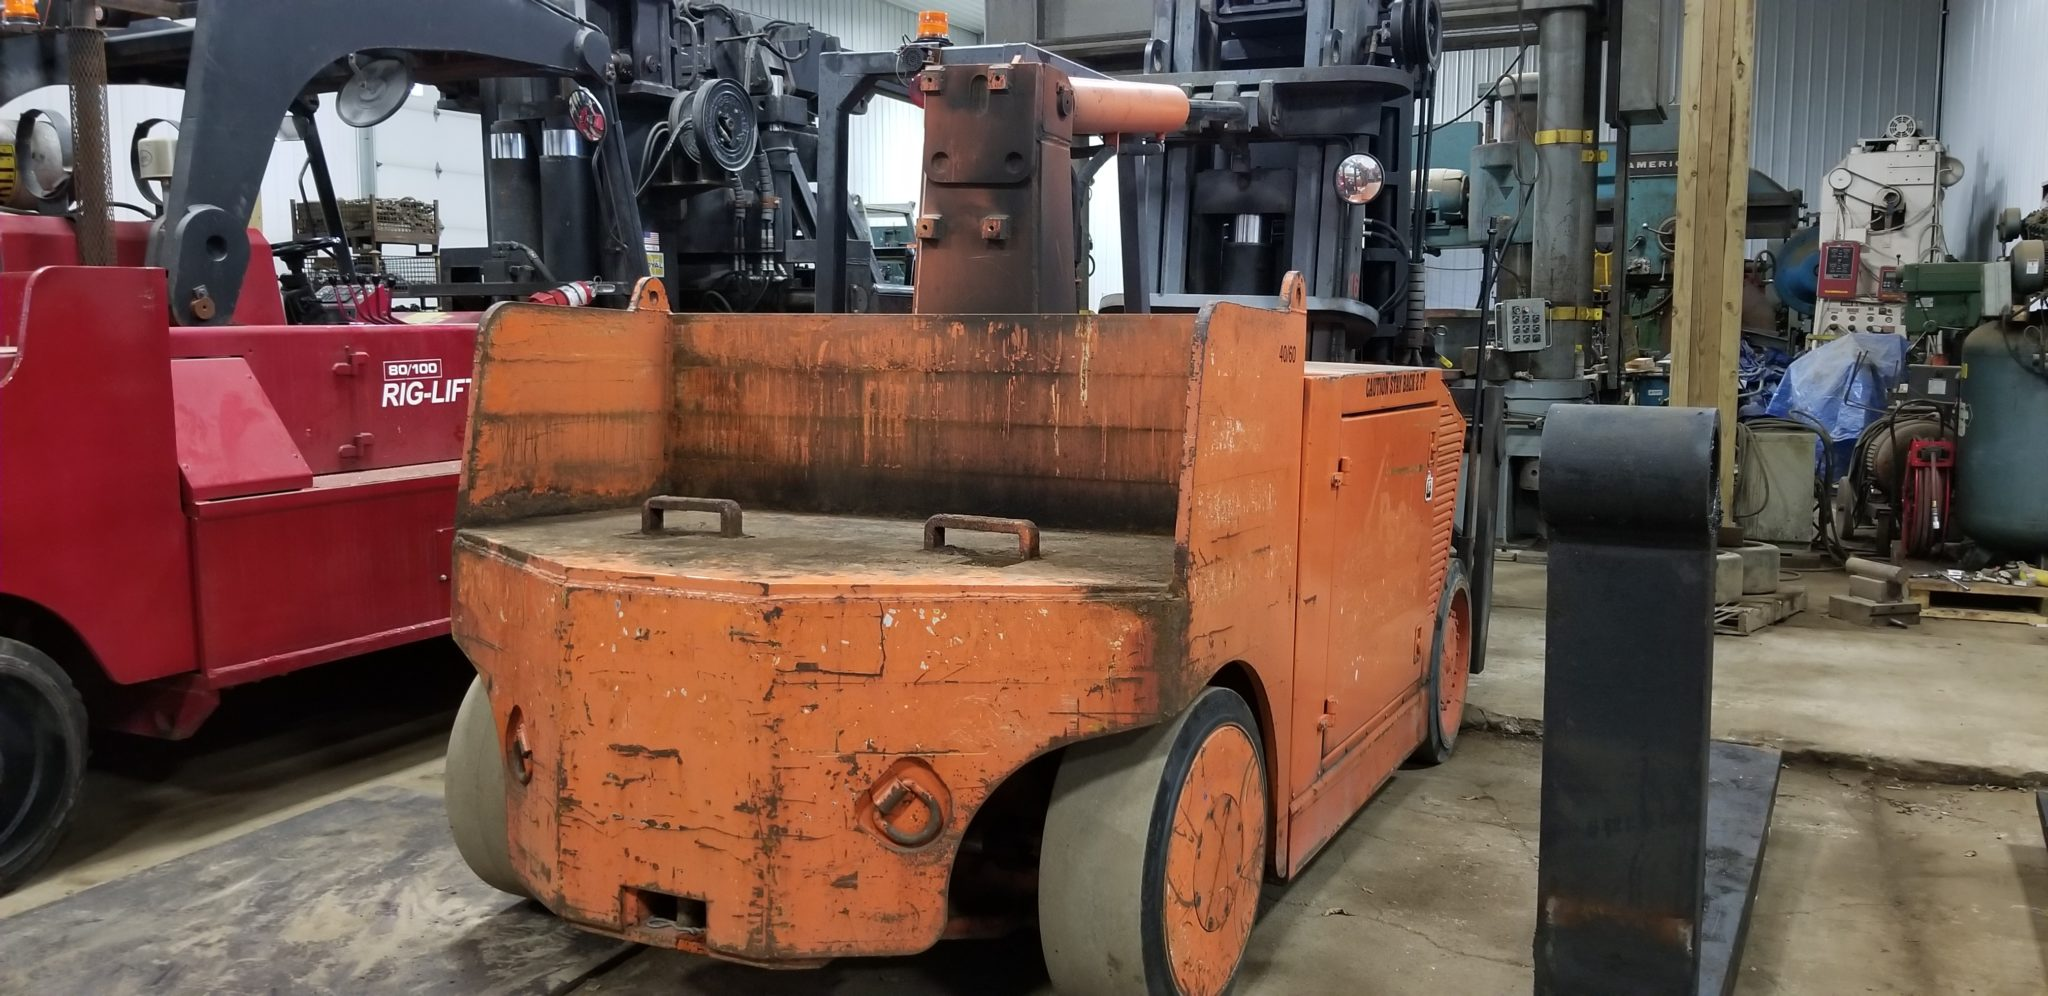 Versa Lift 4060 Forklift For Sale 40 000lb 60 000lb Machinery Business Information